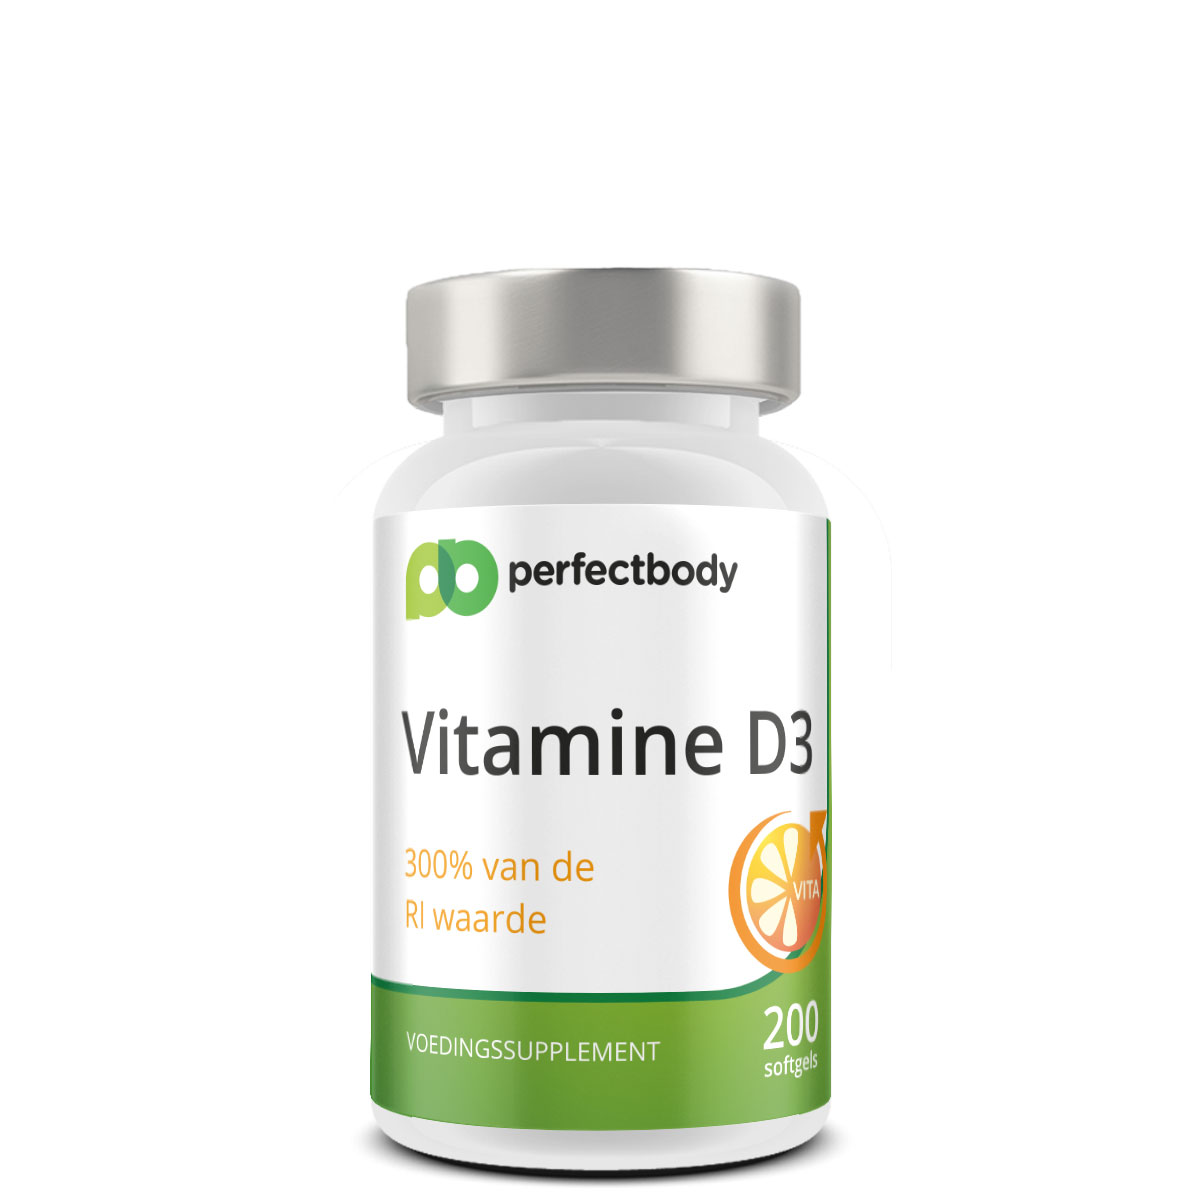 Perfectbody Vitamine D3 - 15mcg - 200 Softgels